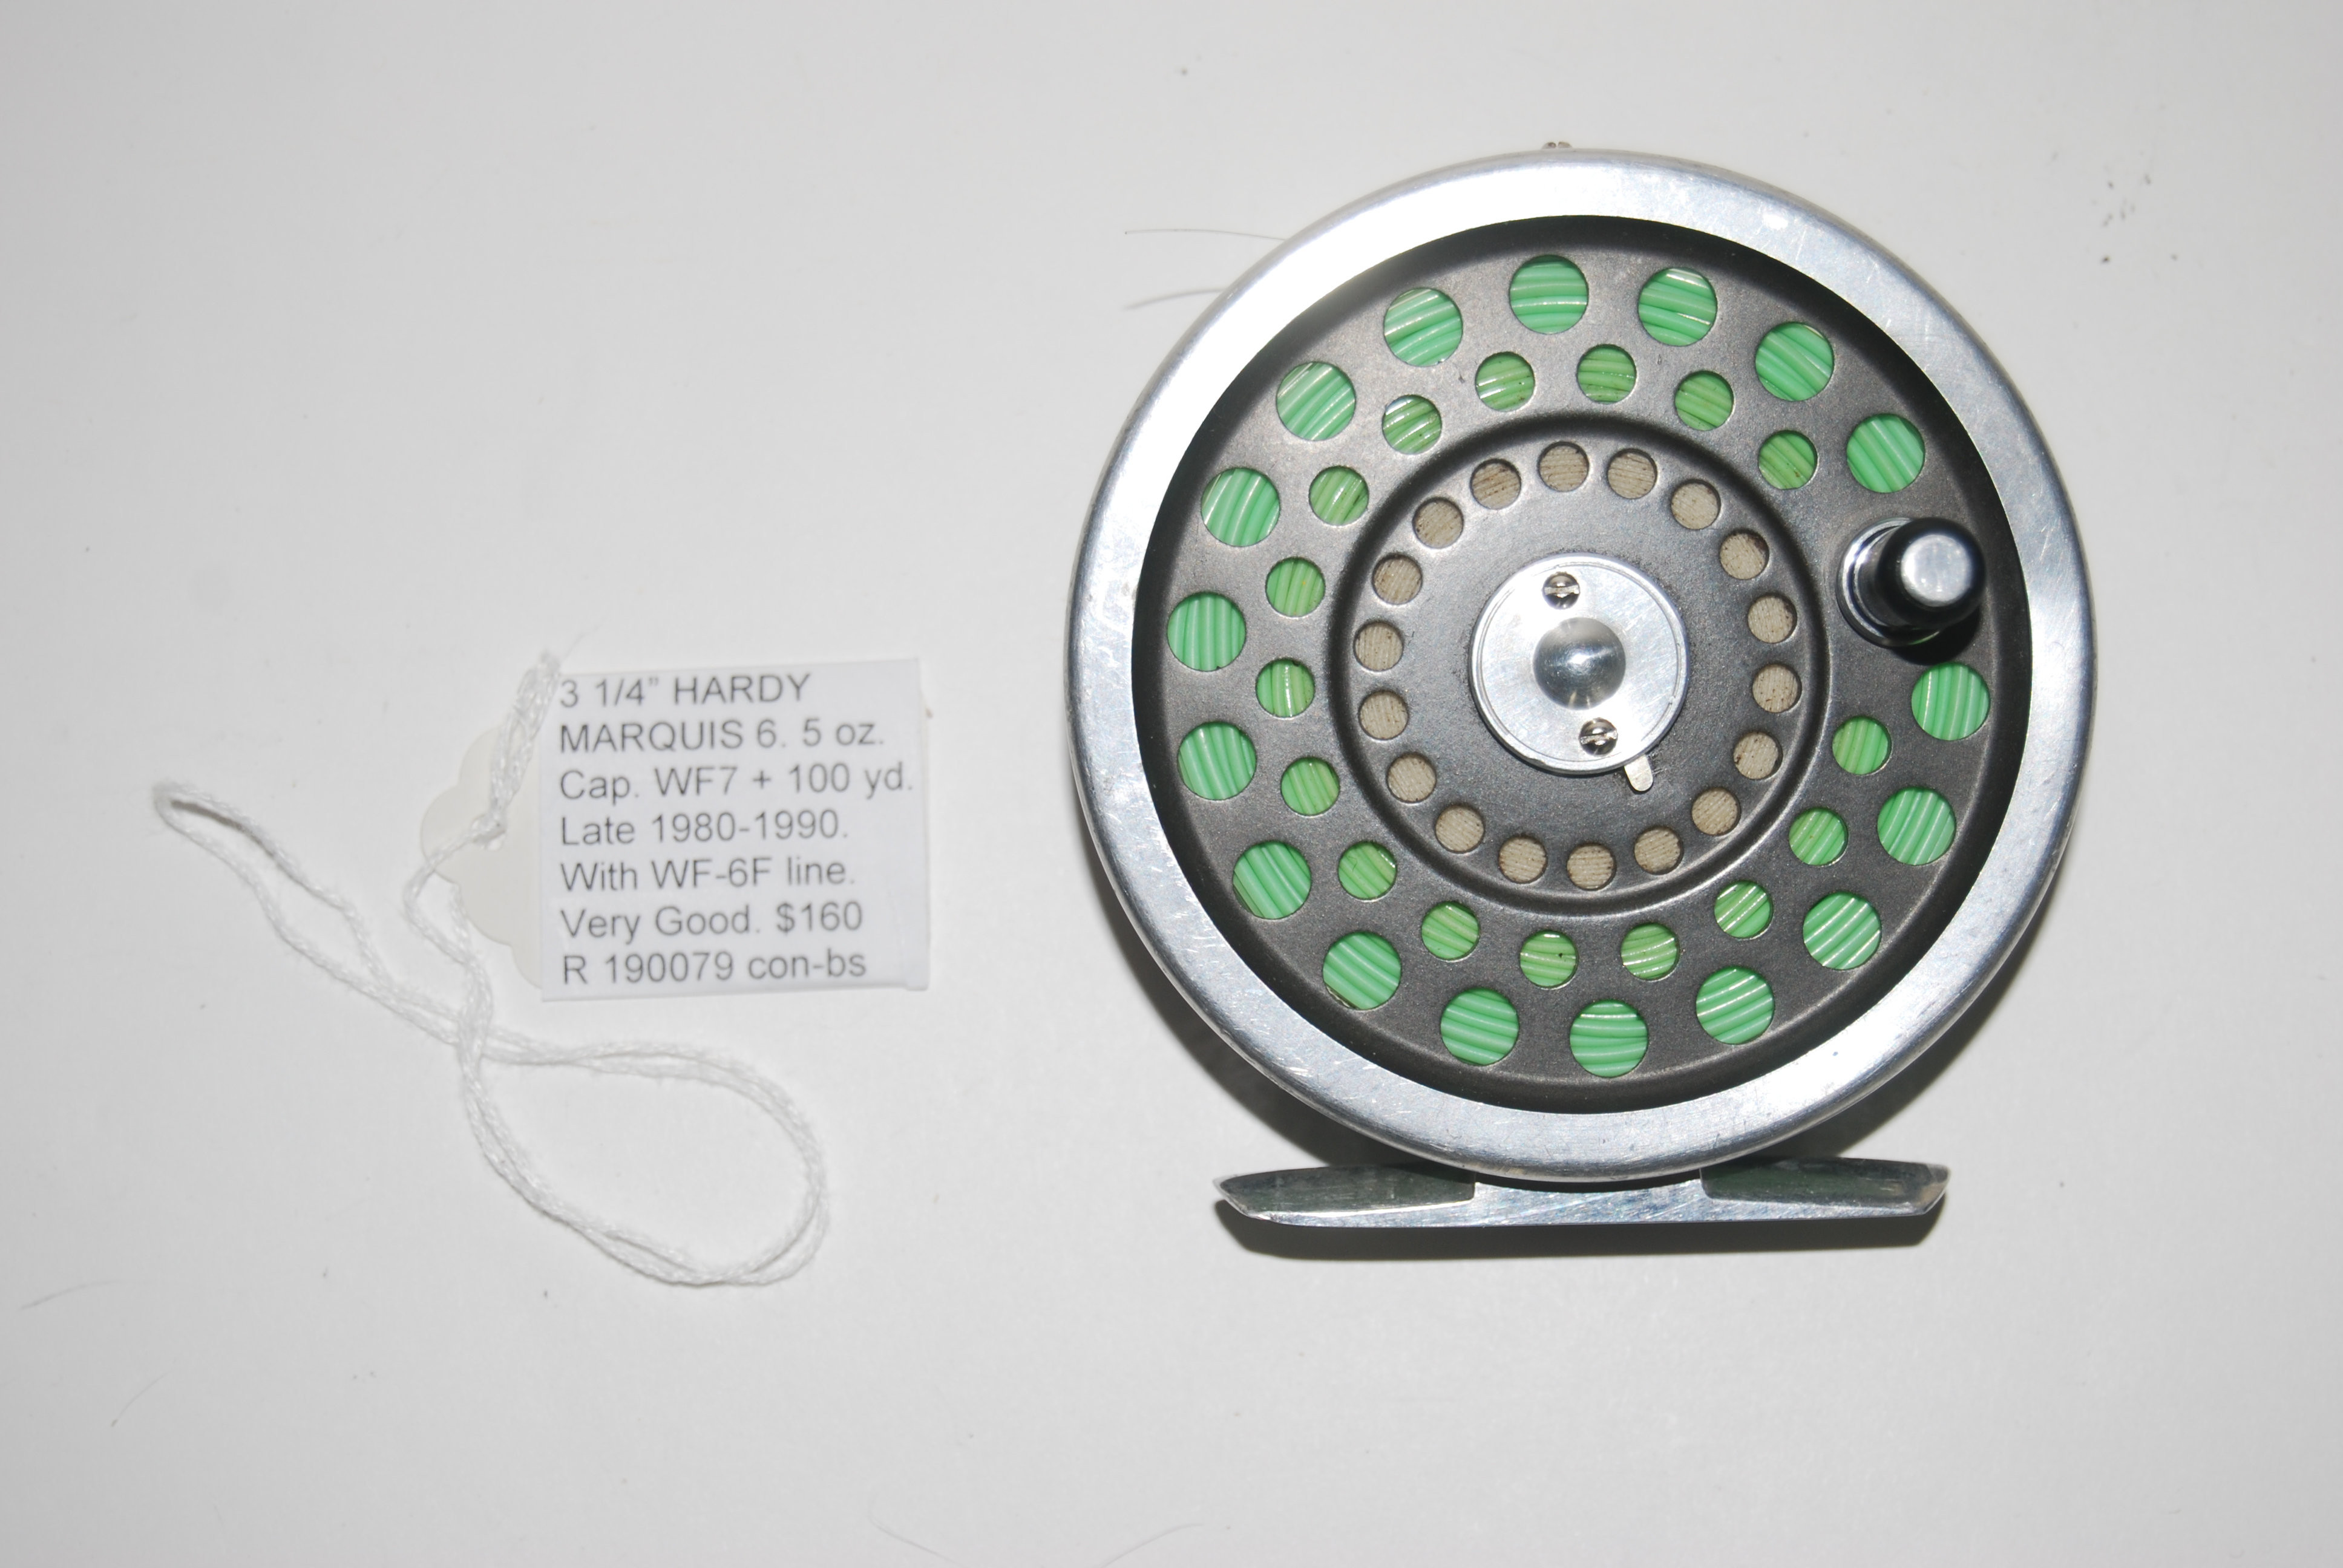 "Image for 3 1/4"" HARDY MARQUIS 6 RH/LHL 5 oz. .Cap. WF-7 + 100 yd. Late 1980's-1990 model with silver rims on dark grey spool."